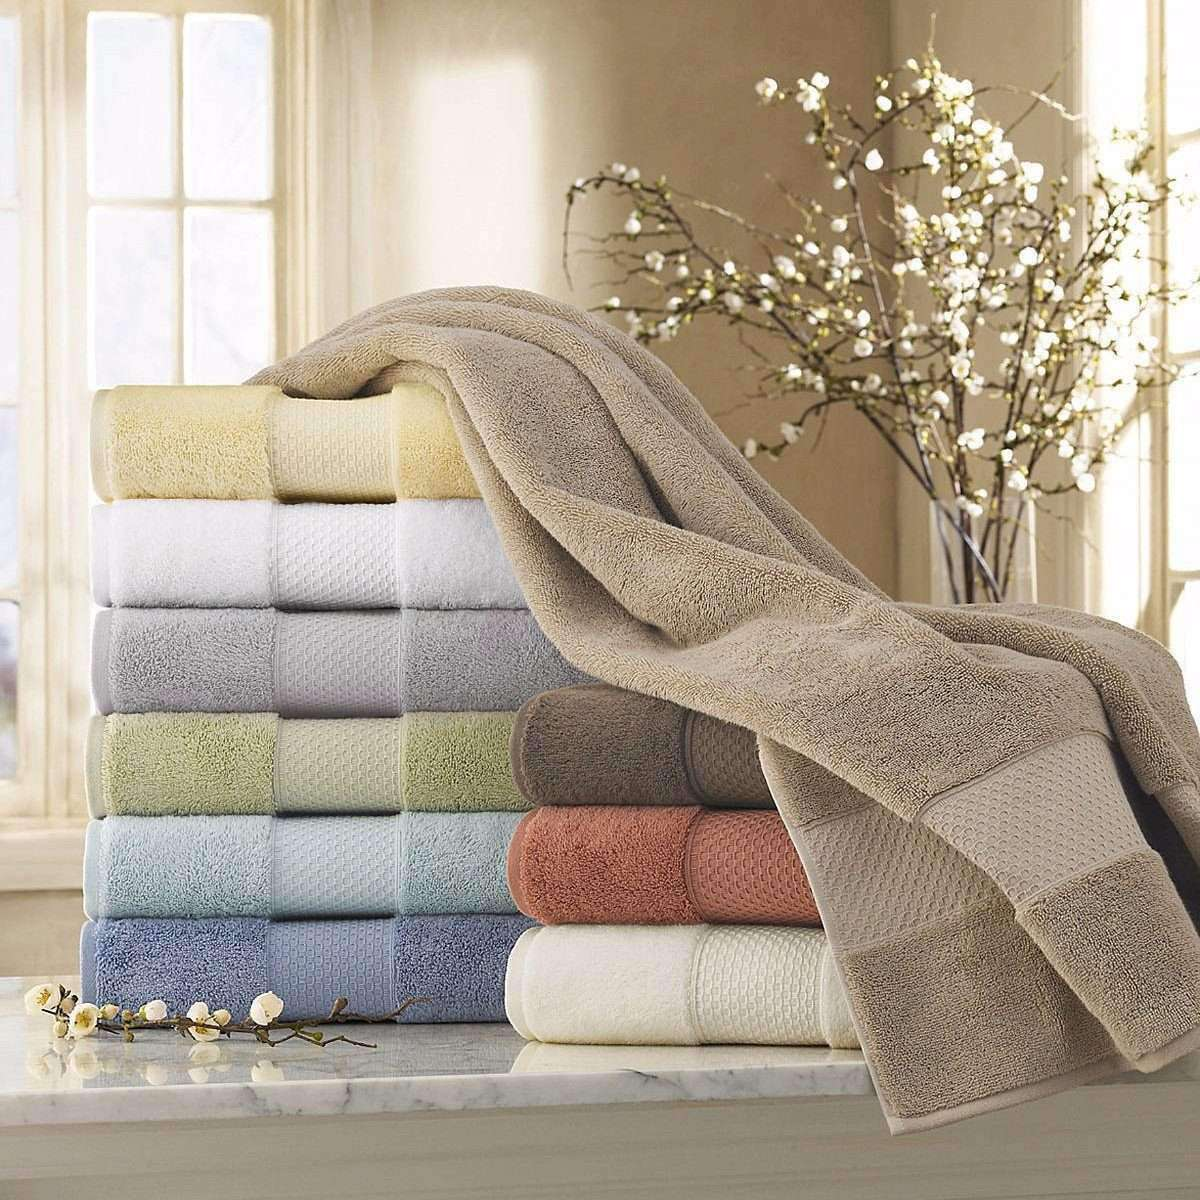 6-Piece Bath Towel Set - Mariabella Collectio